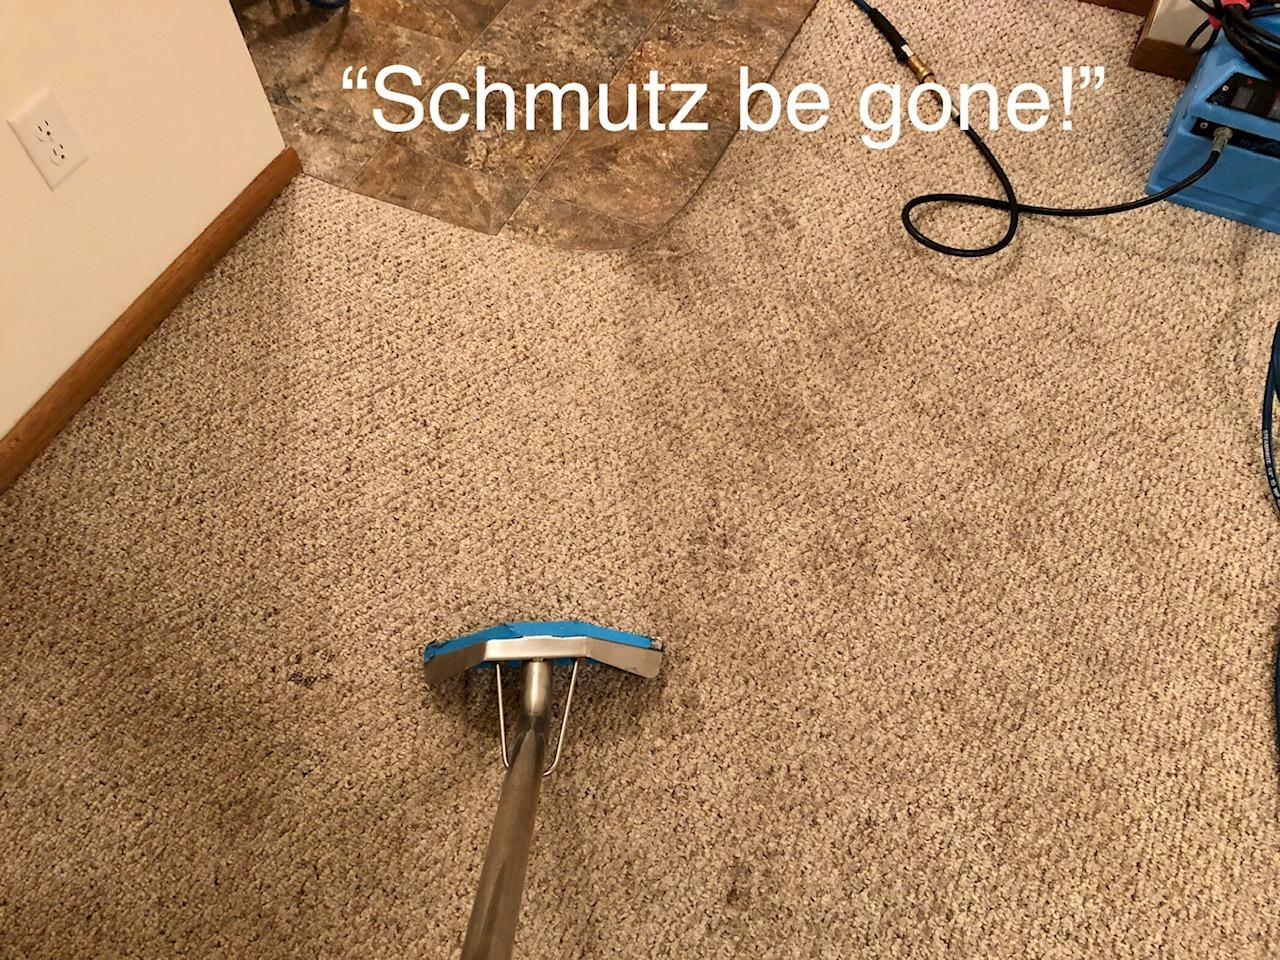 cleaning schmutz